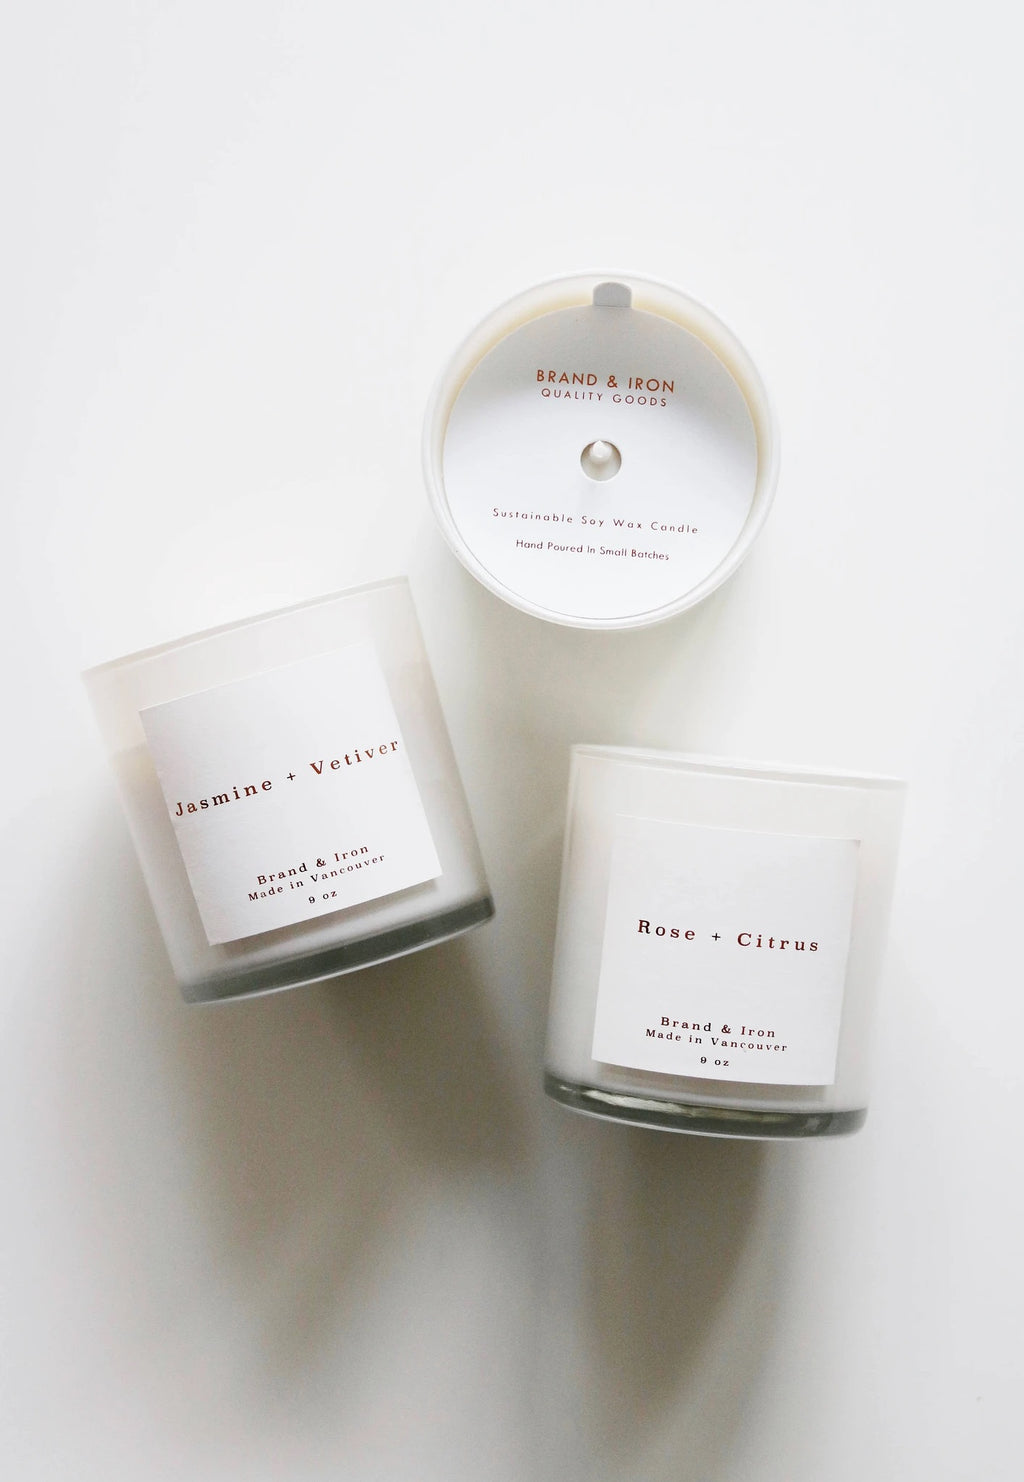 Brand & Iron Candles